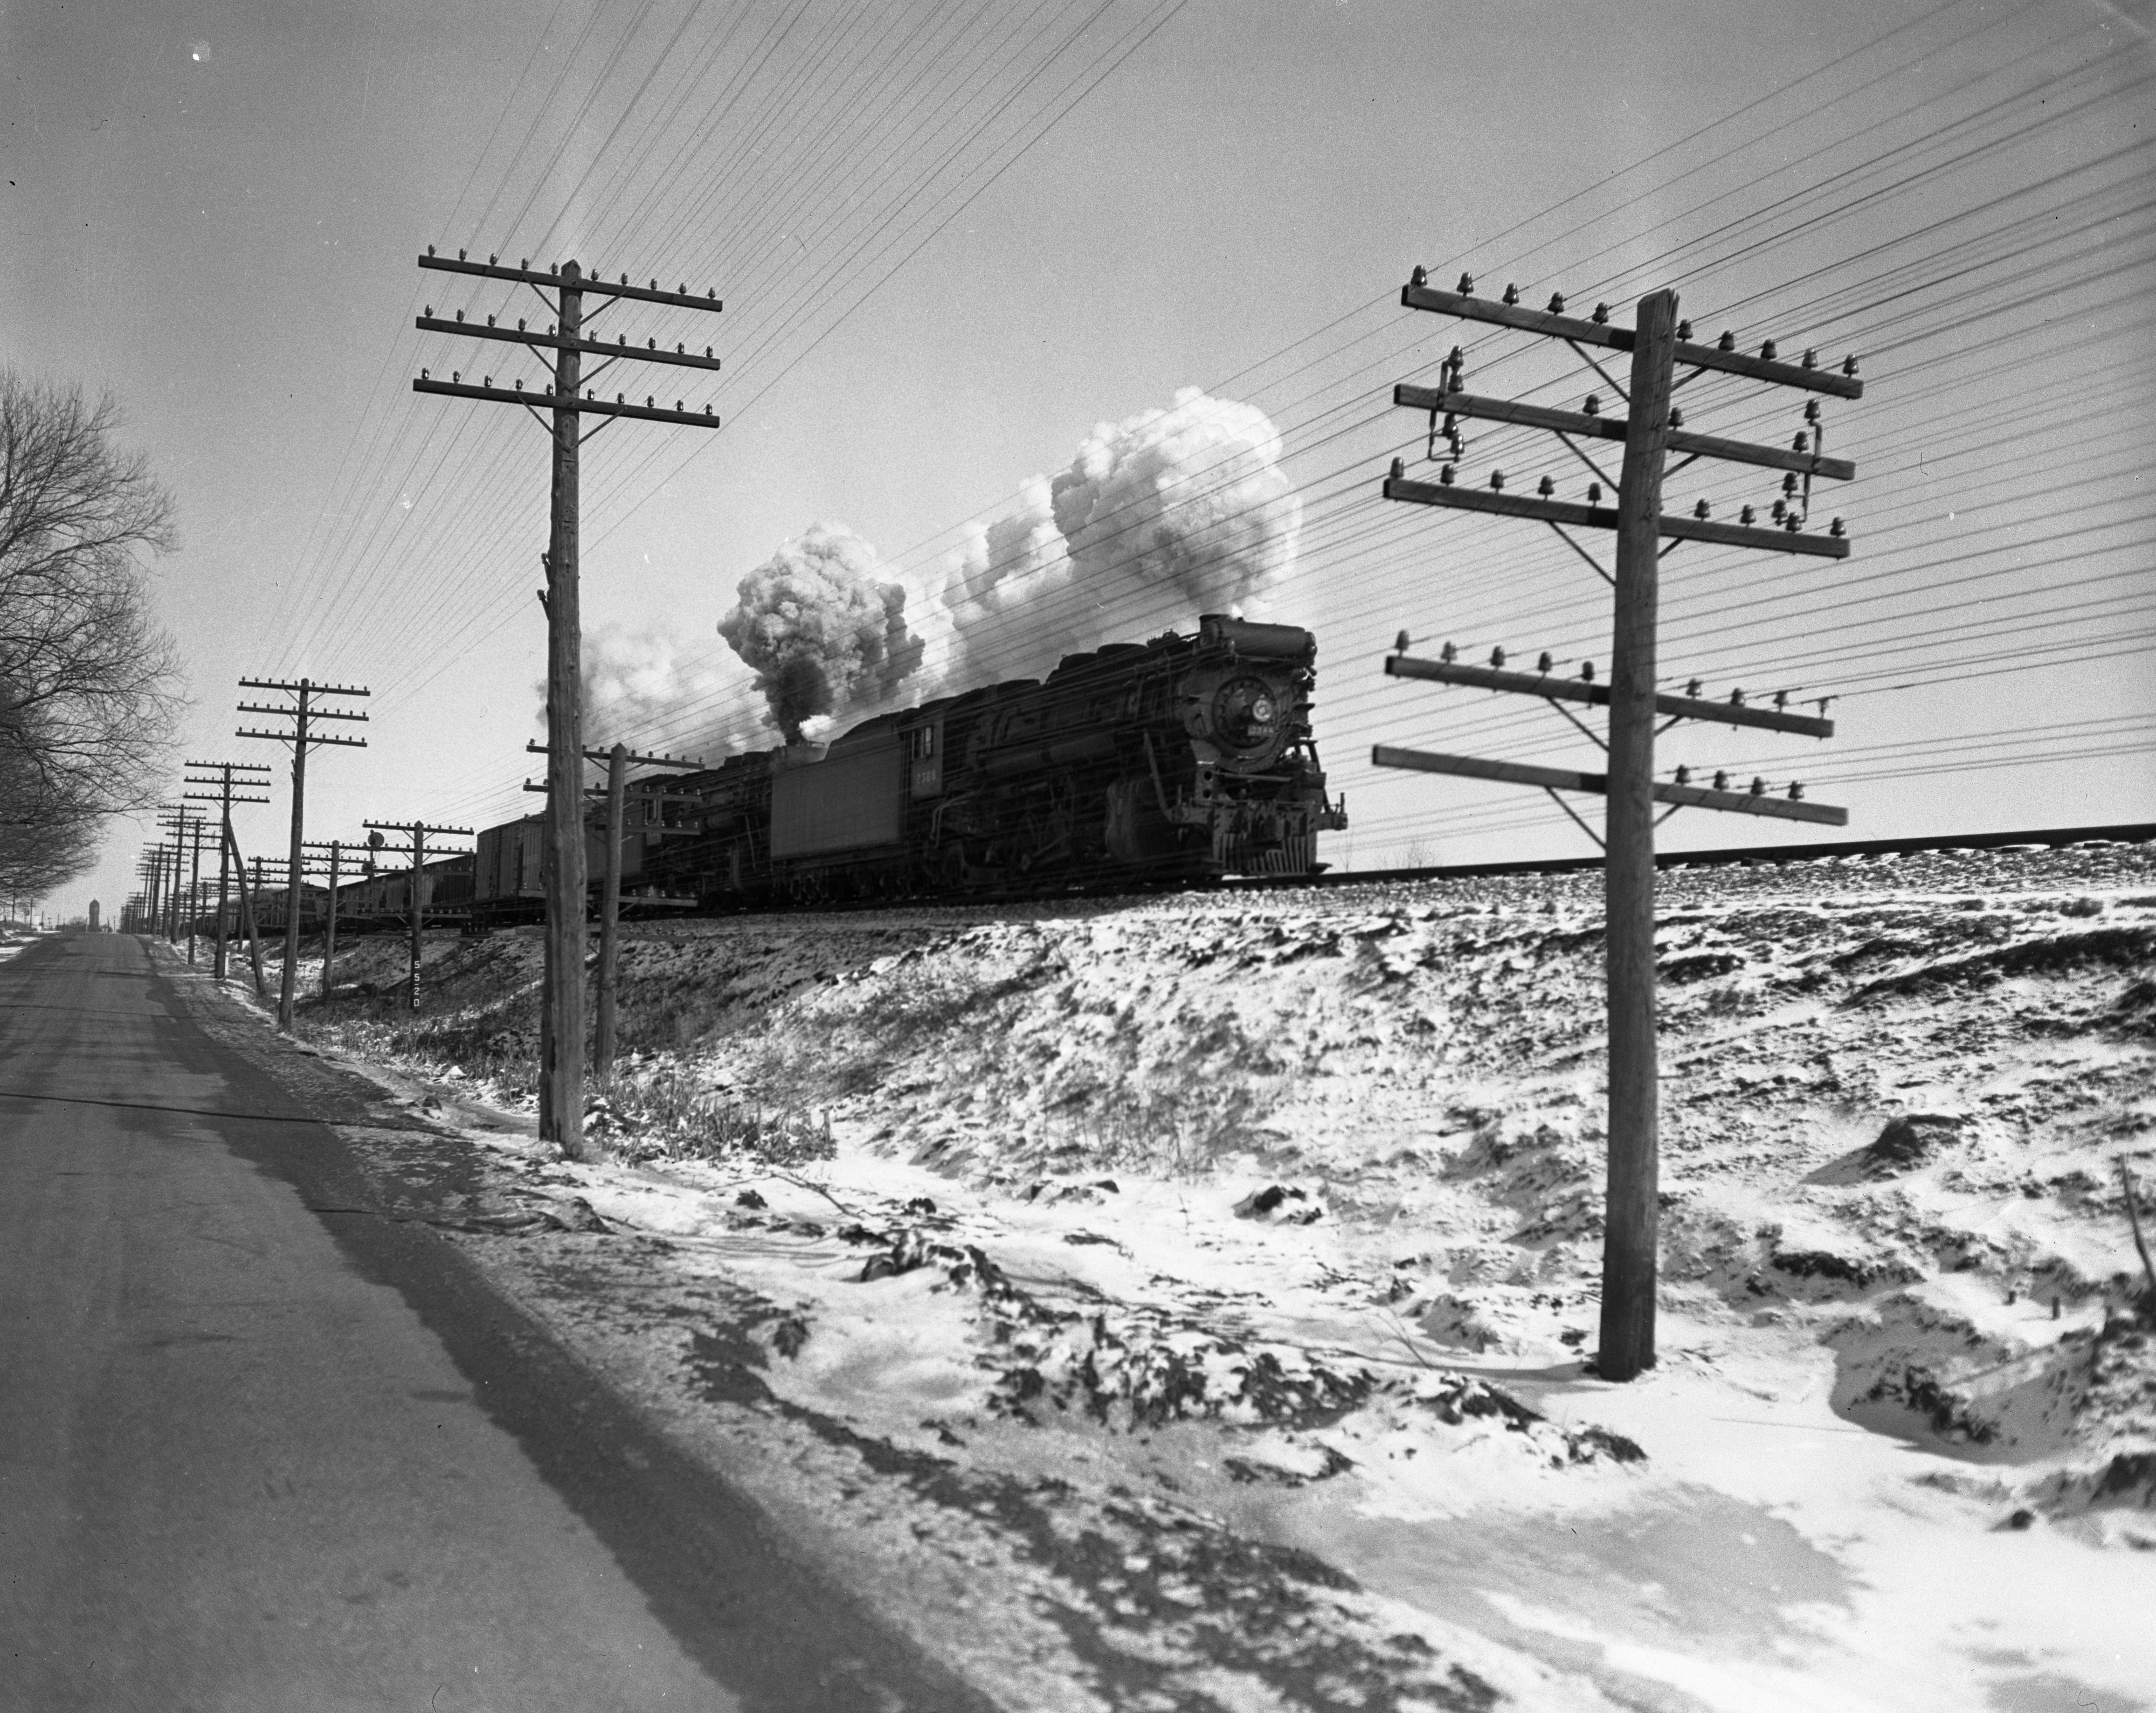 New York Central Railroad Double Header in Winter, circa 1937 image